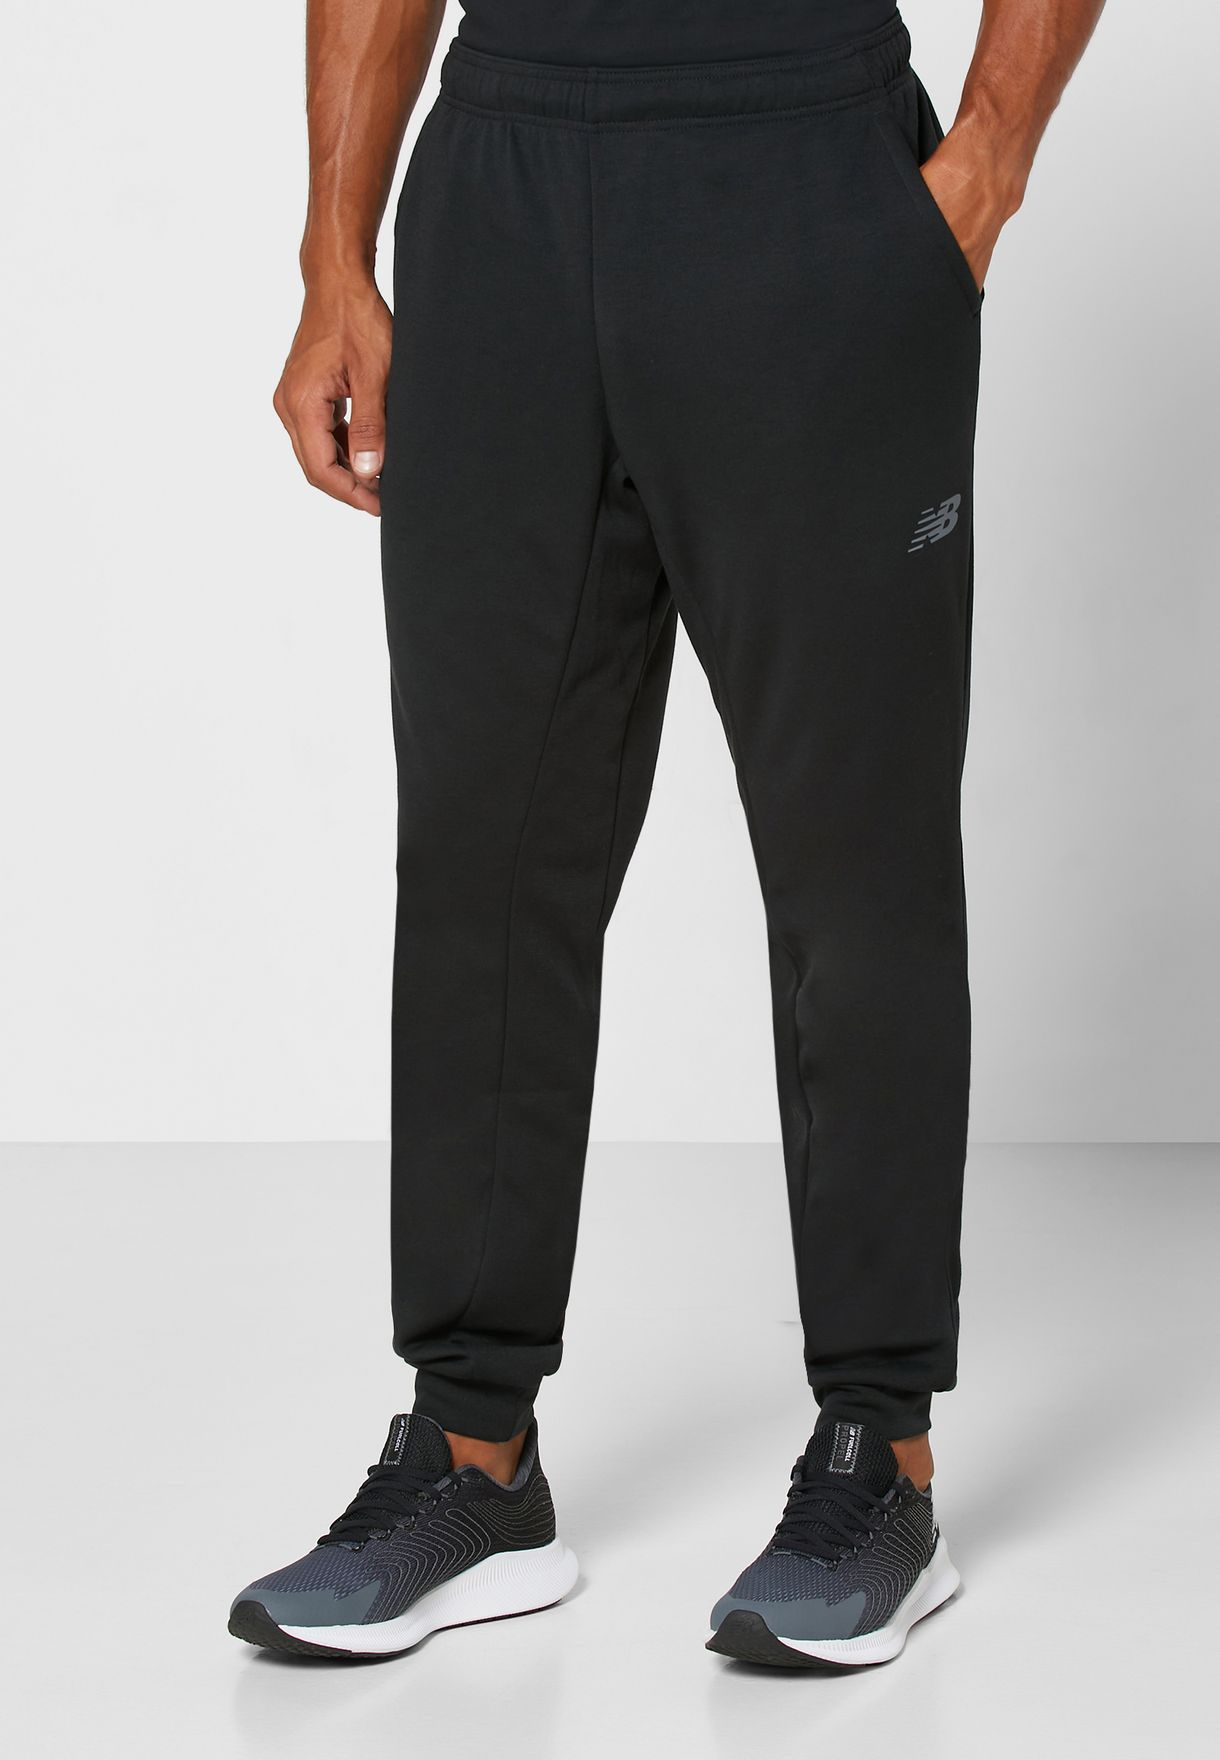 Tenacity Cuffed Sweatpants